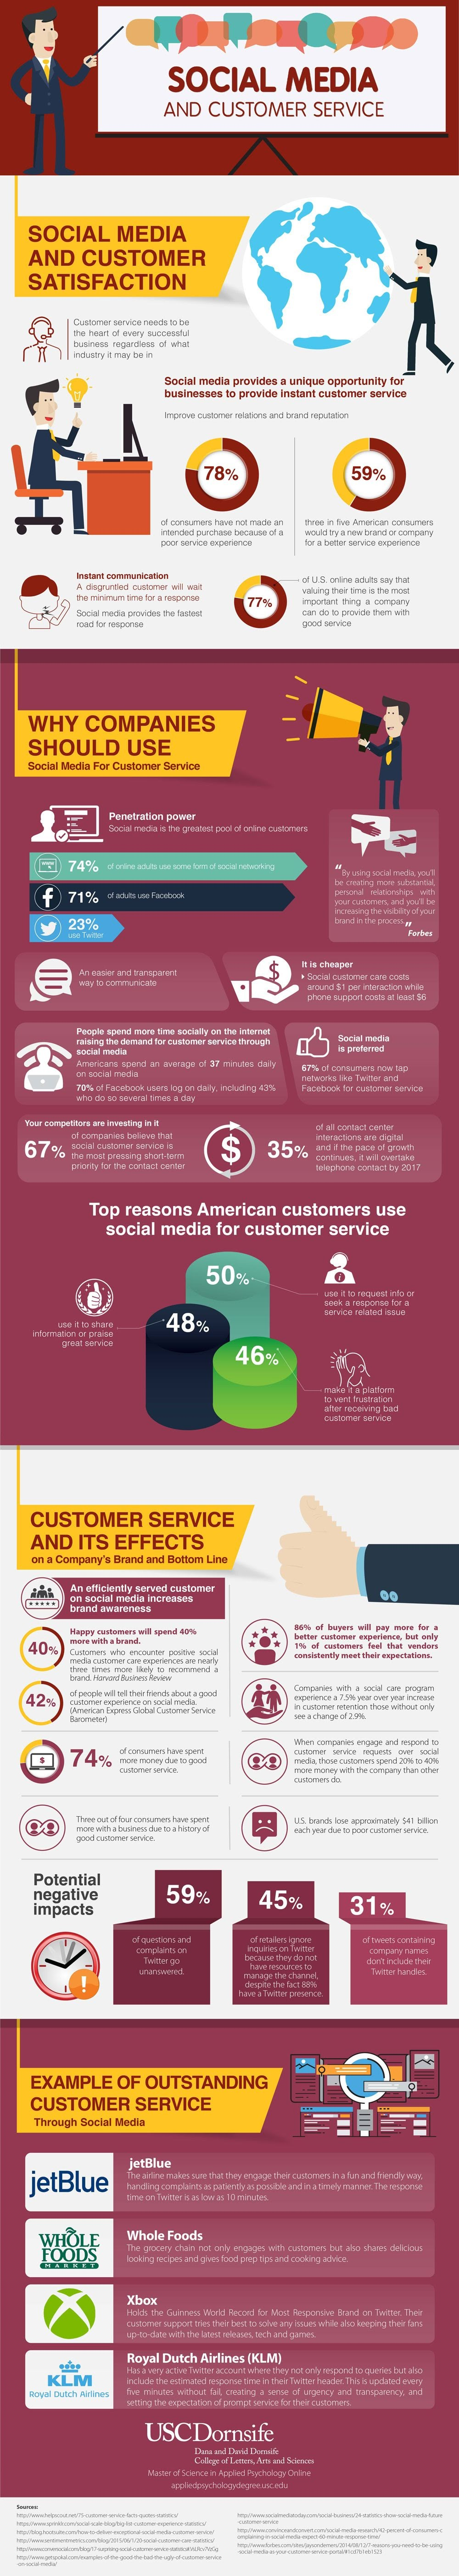 Social Media A Top Tool For Business Customer Service